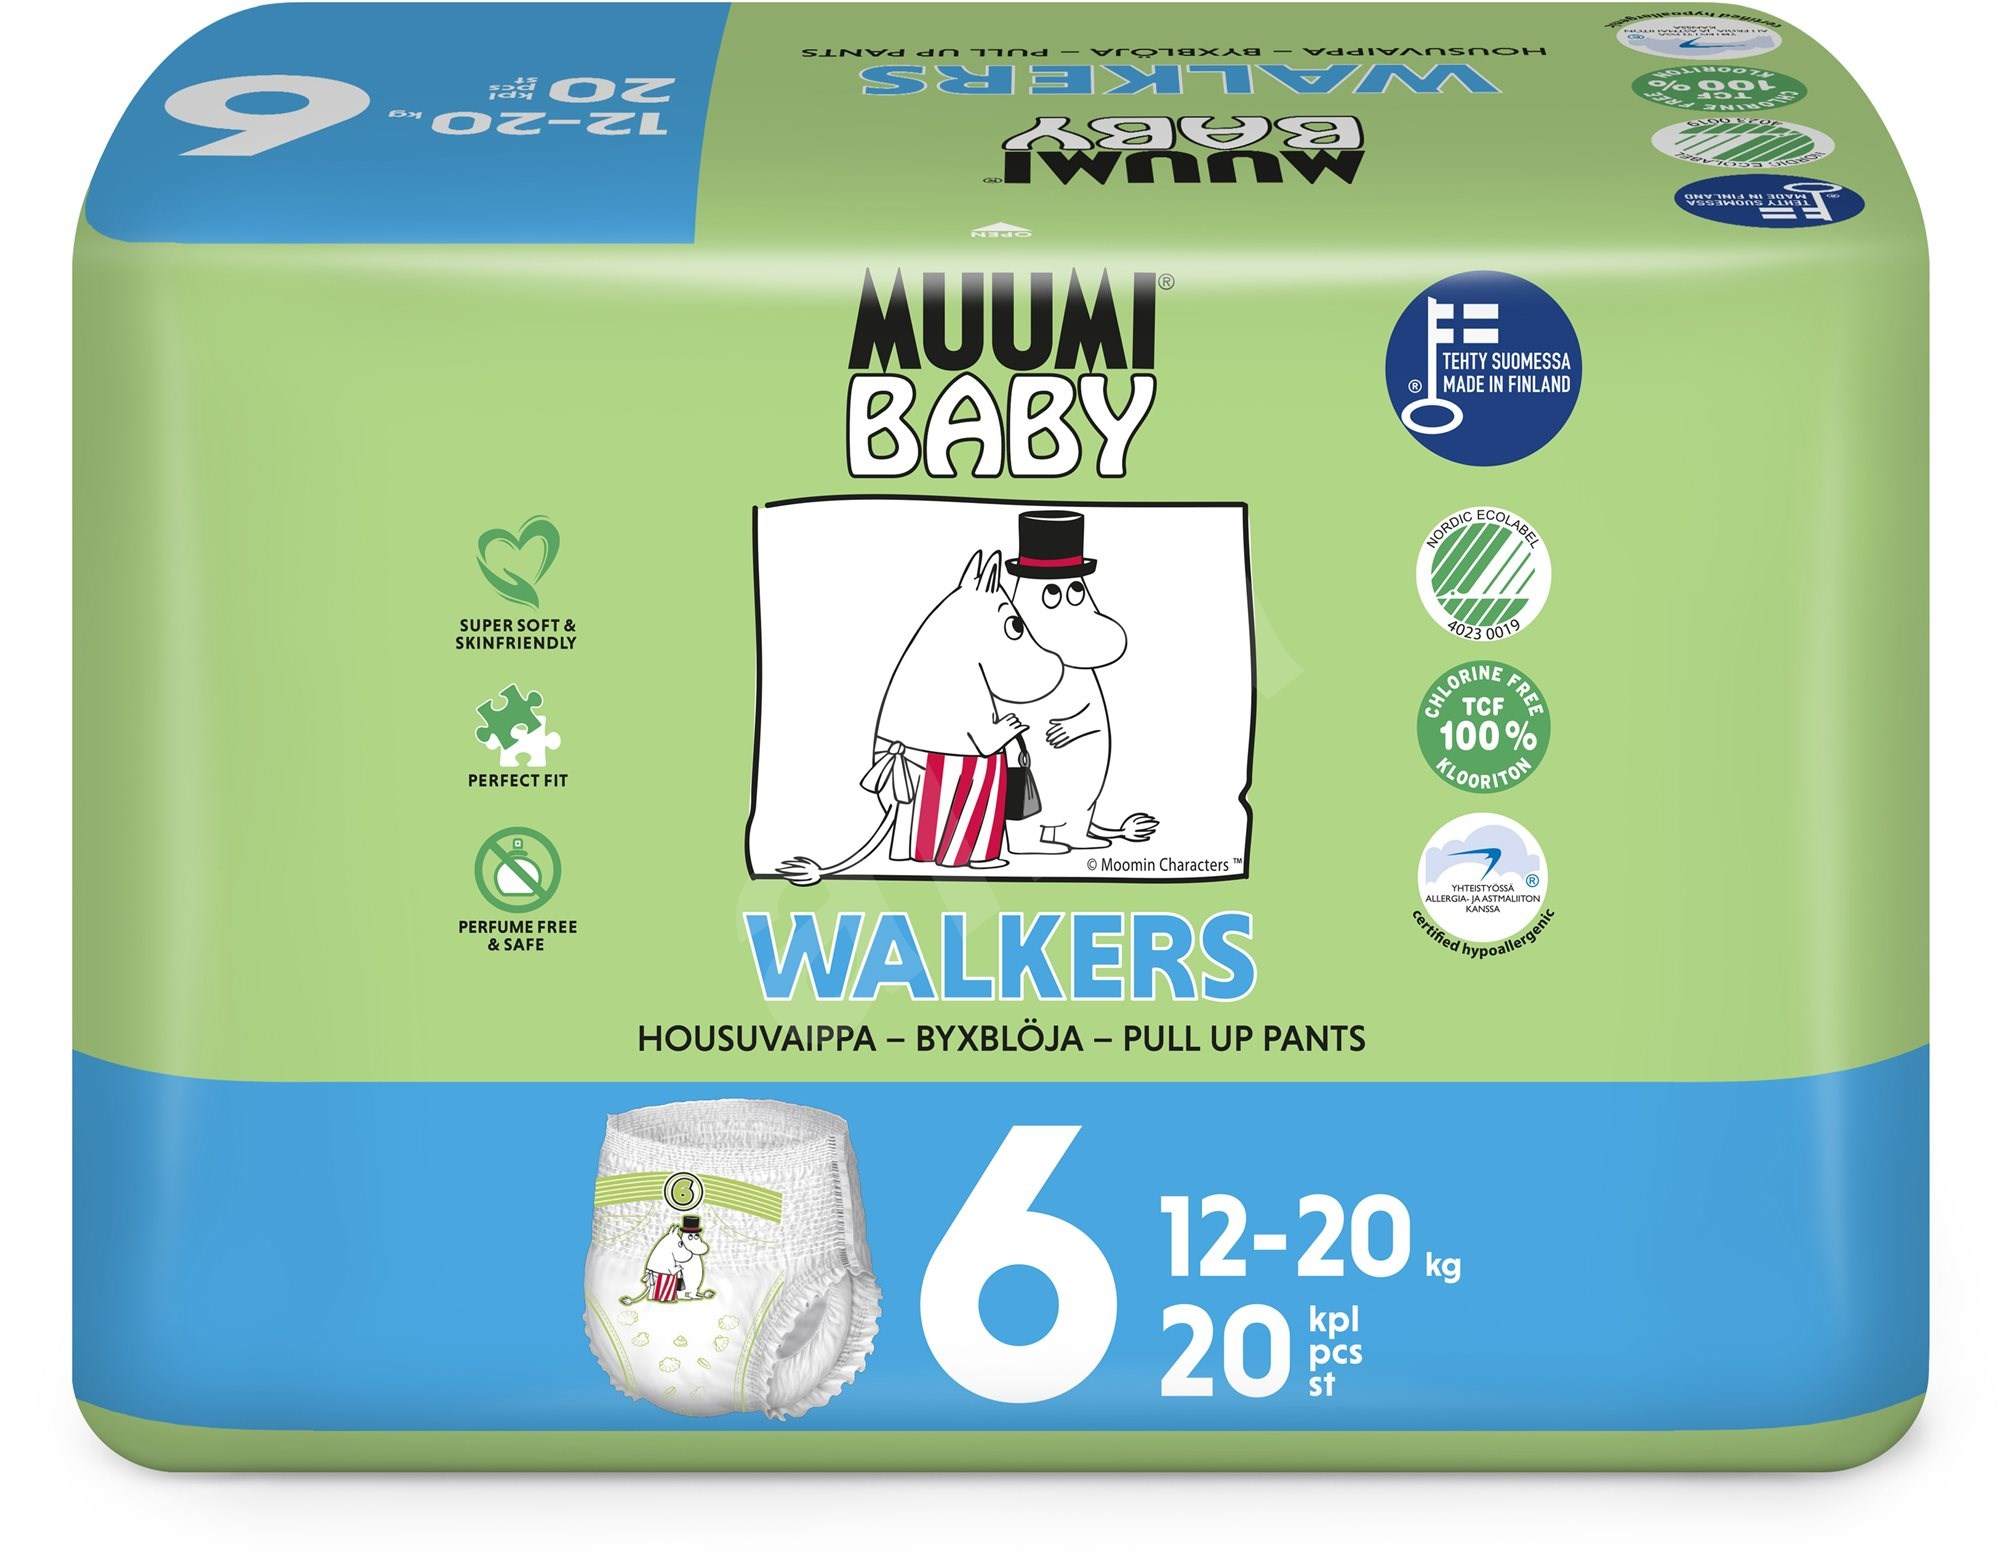 Muumi Baby Walkers 36 ksJunior 12-20 kg